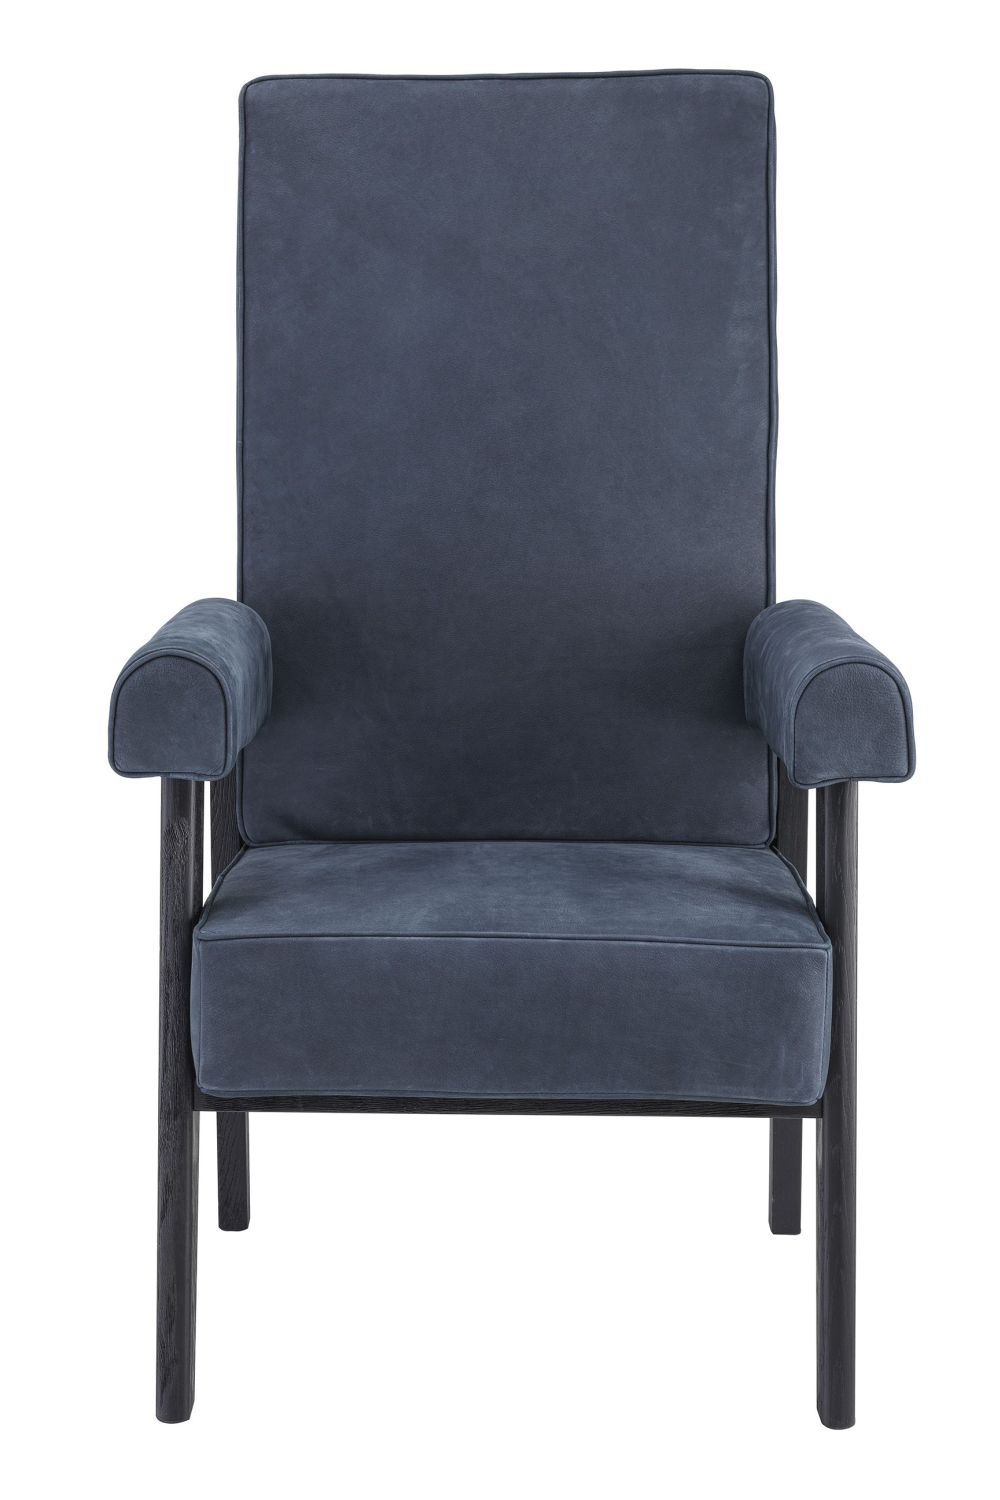 Blue Leather High-Back Chair | Eichholtz Milo | Woodfurniture.com